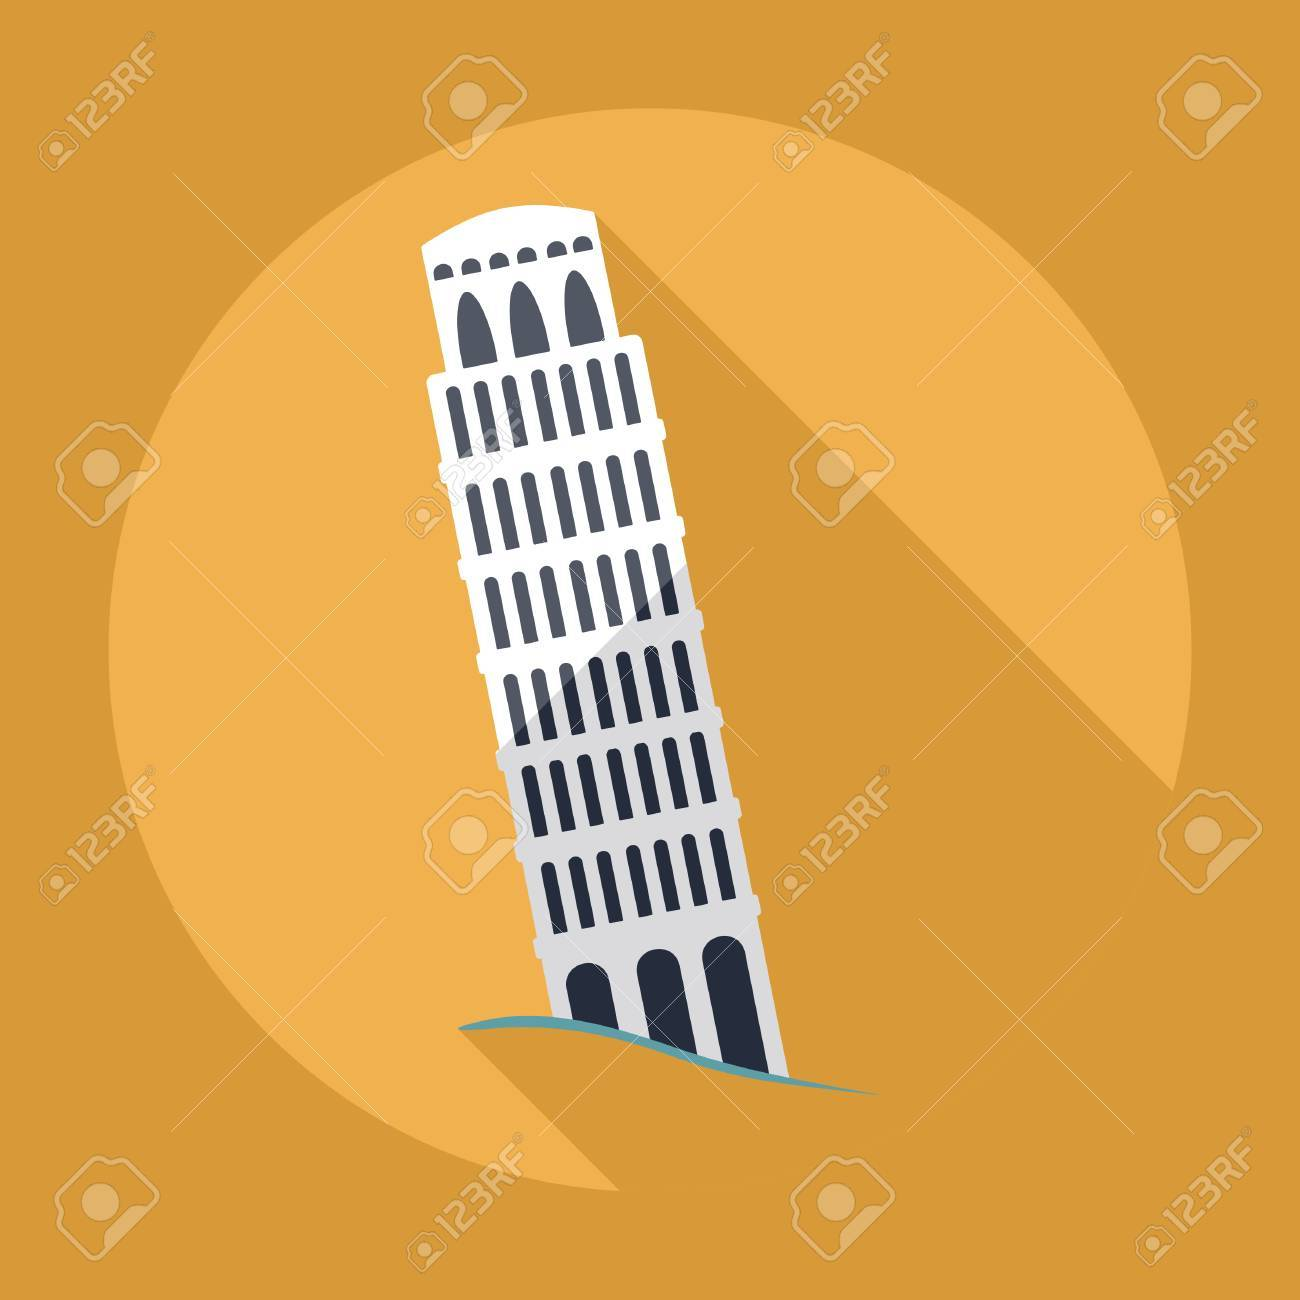 Flat modern design with shadow , Leaning Tower of Pisa - 53030640